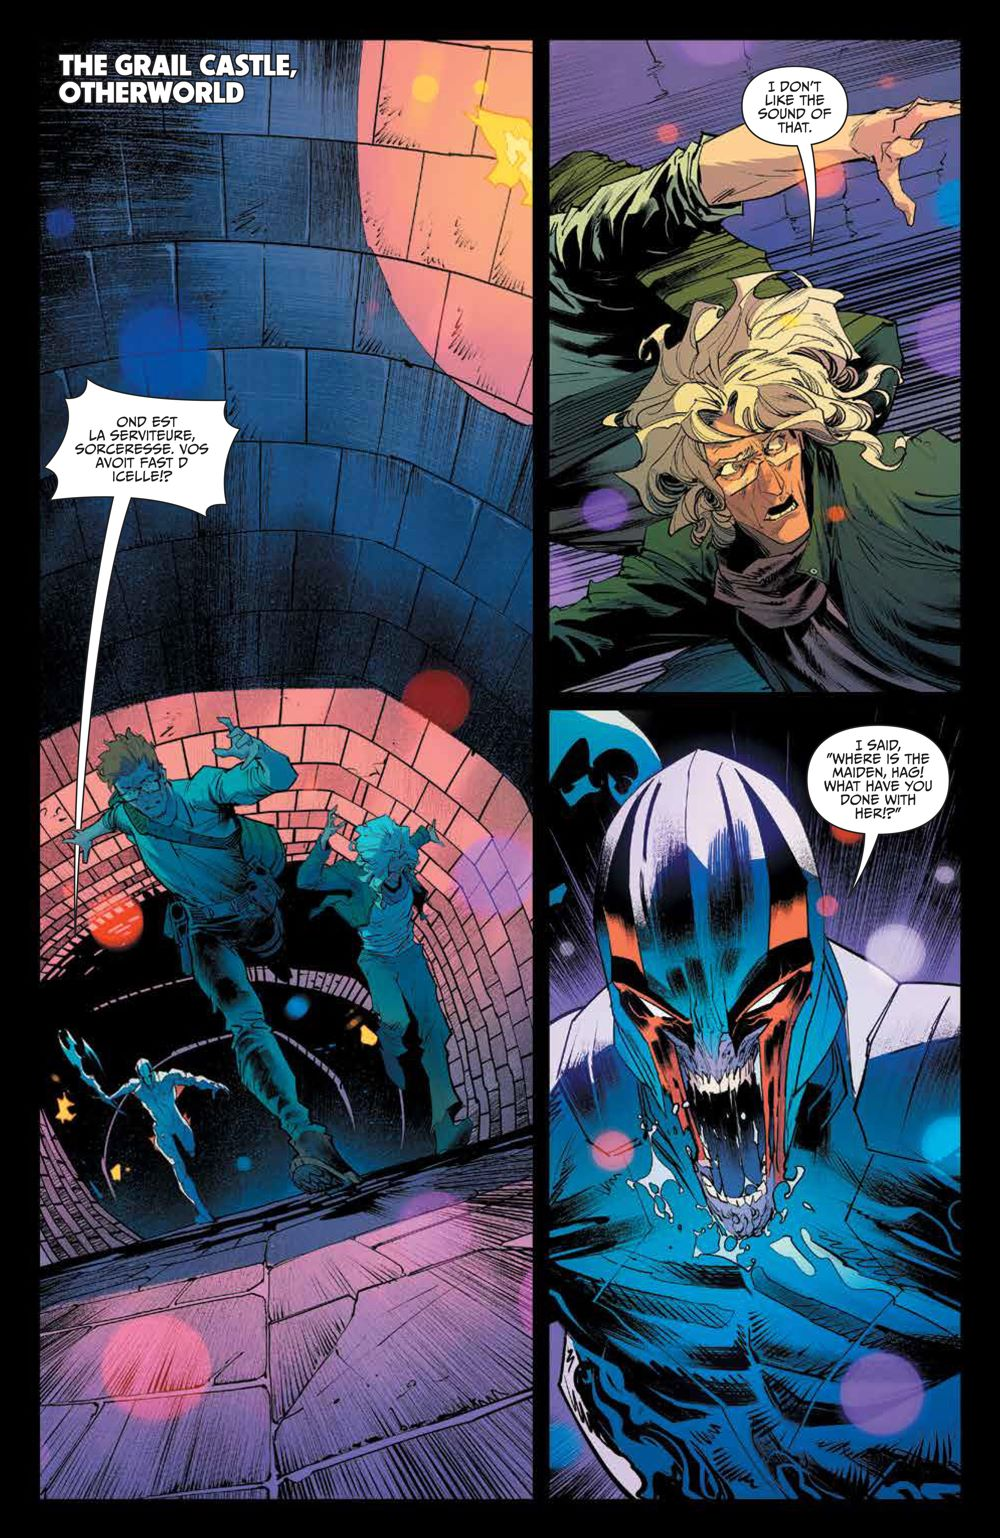 OnceFuture_016_PRESS_5 ComicList Previews: ONCE AND FUTURE #16